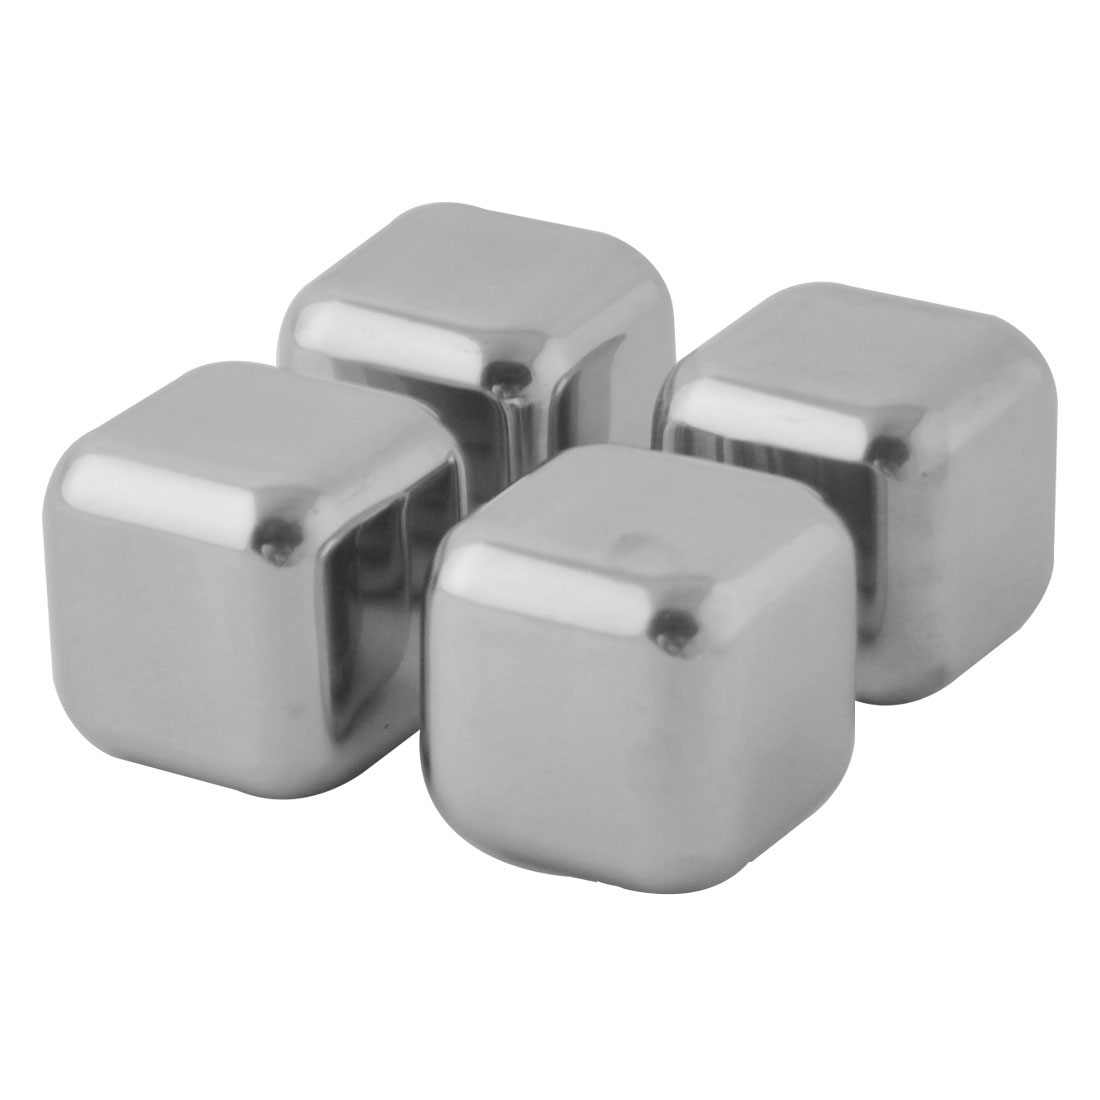 Bar Pub Vodka Beer Stainless Steel Whisky Cooling Stones Ice Cube 4 Pcs